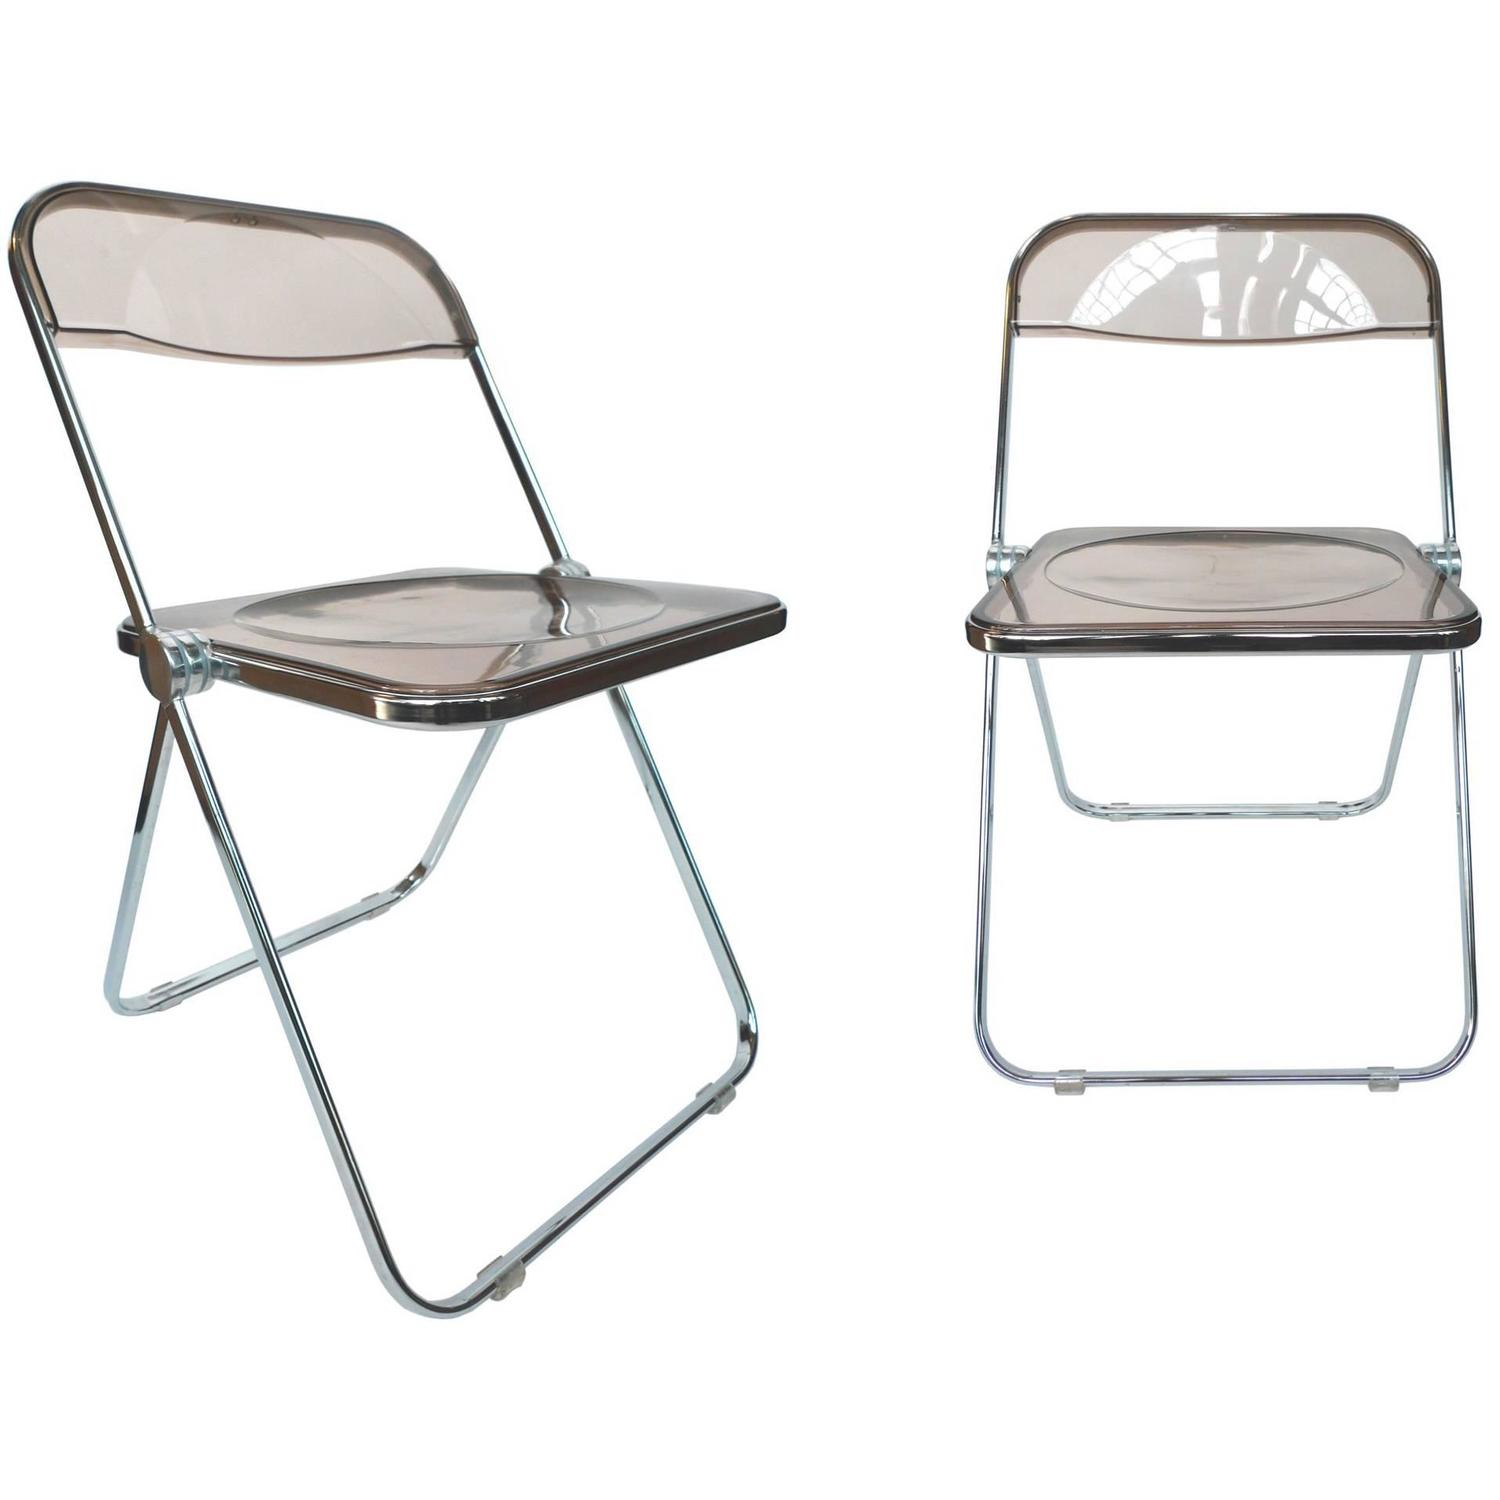 Lucite Folding Chairs Unique Lucite Chairs Rtty1 Rtty1